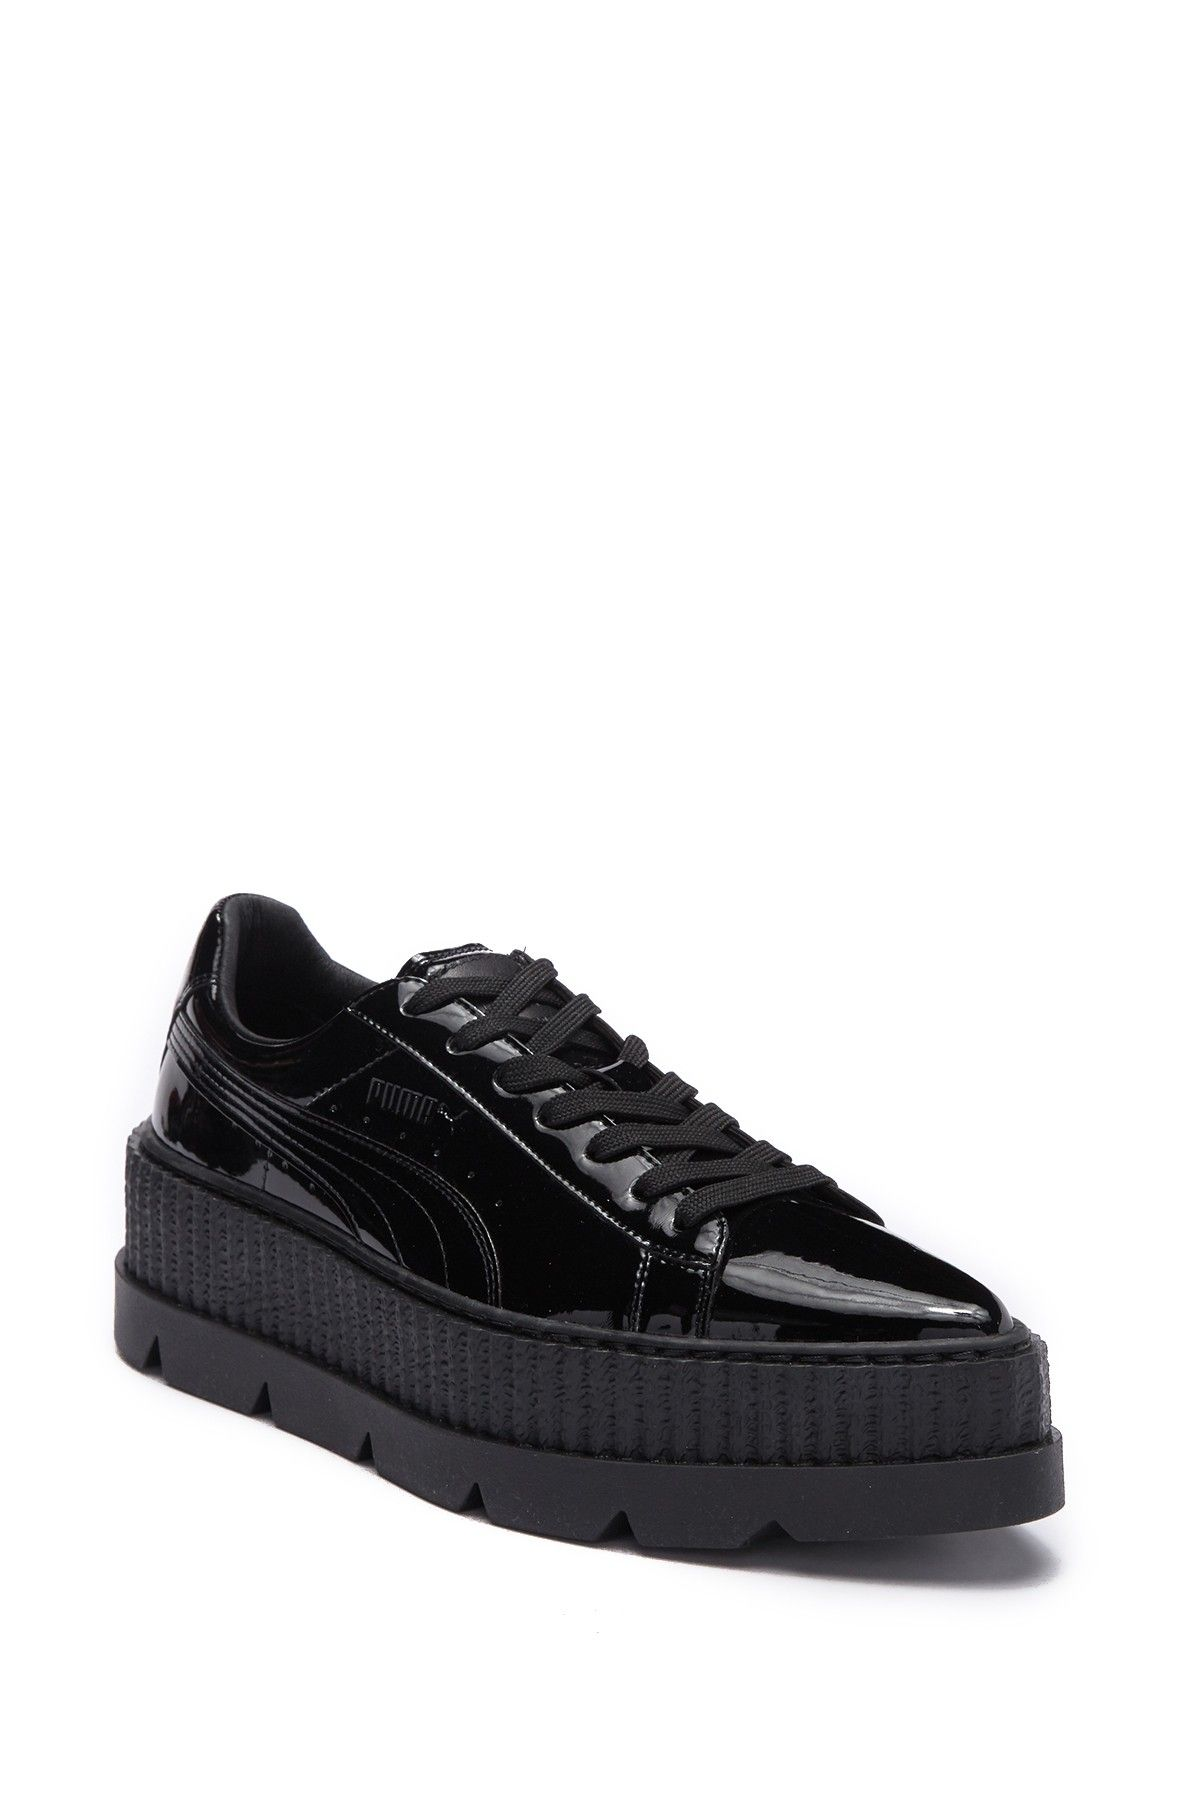 4696acc94cd9 PUMA - FENTY PUMA by Rihanna Pointy Toe Creeper Patent Flatform is now 63%  off. Free Shipping on orders over  100.